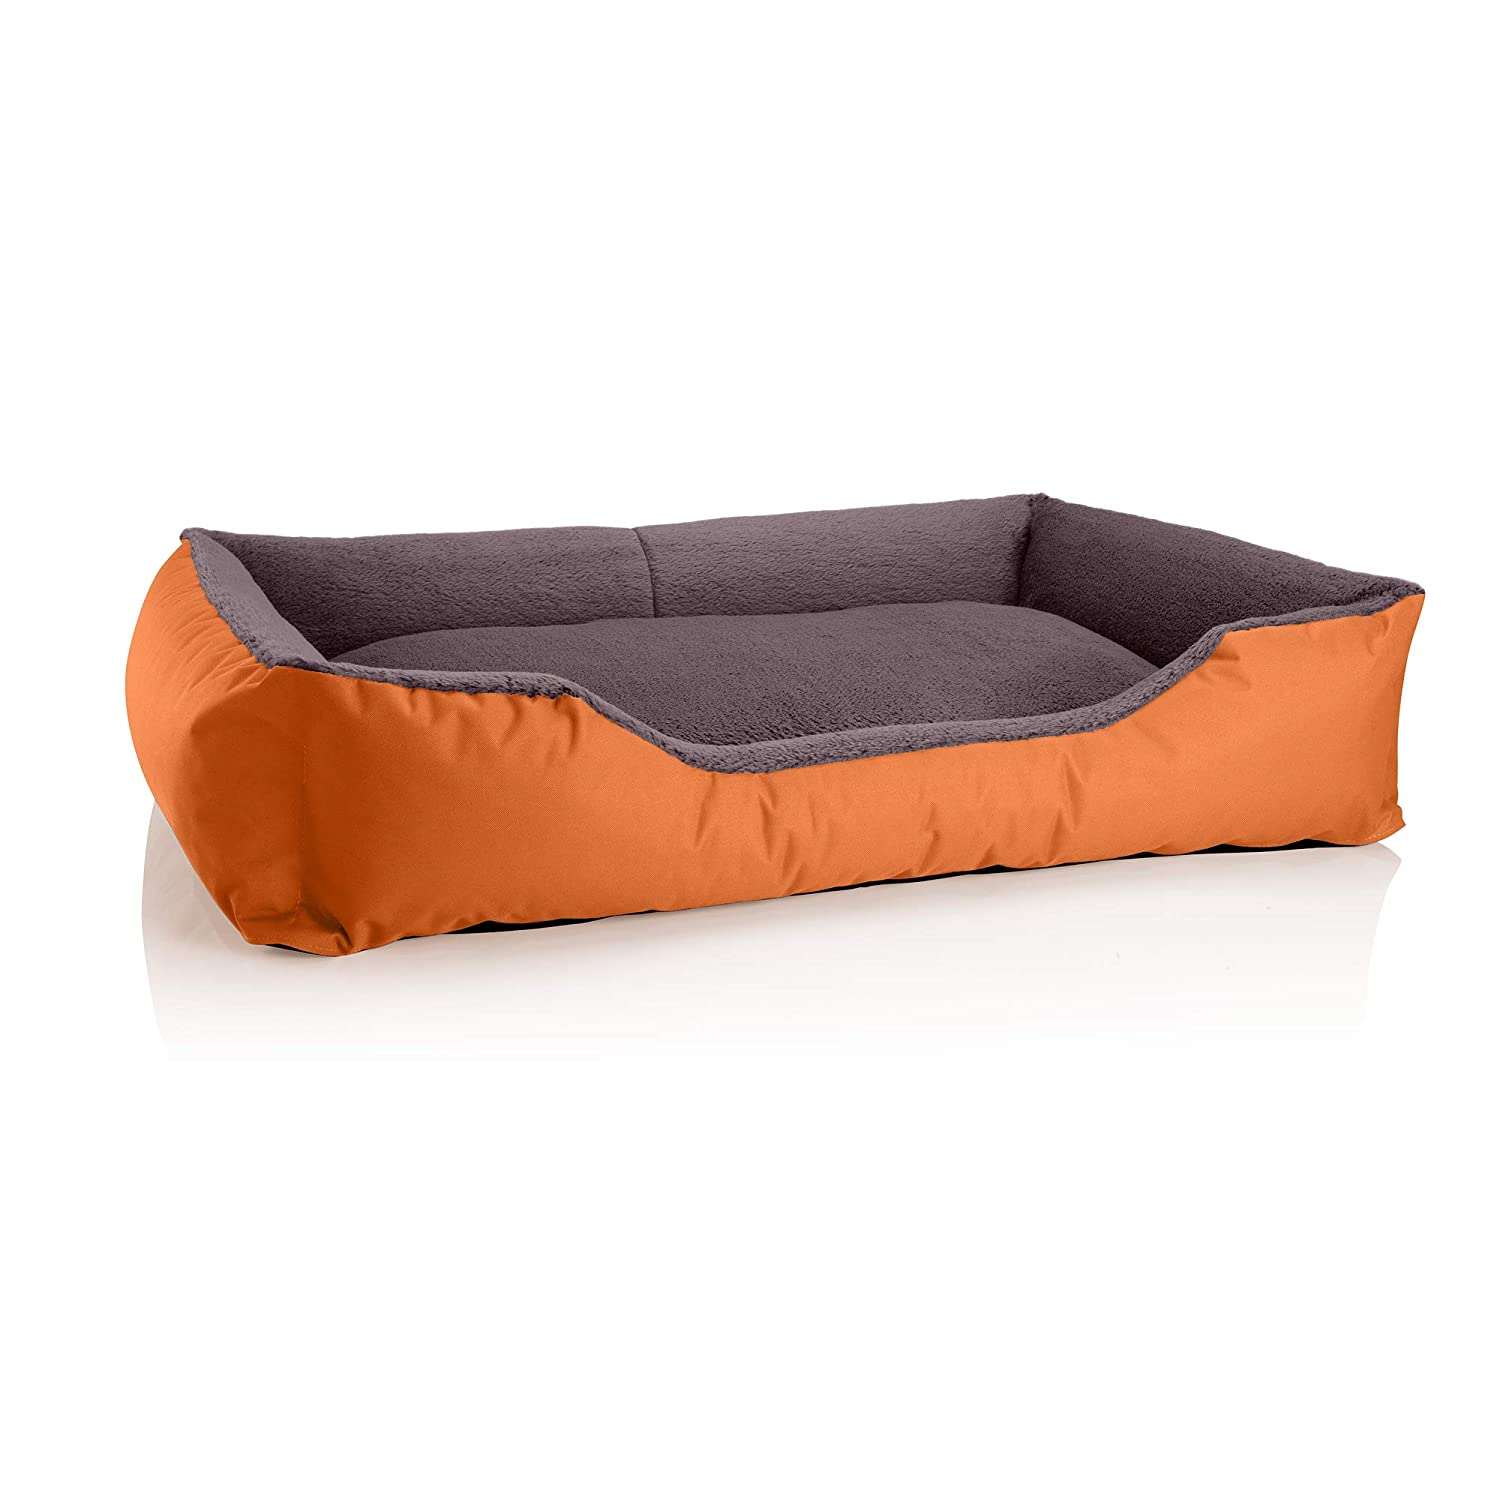 RUSSETBROWN (orange brown) XXXL (ca. 150x110cm)BedDog dog cat sofa TEDDY S to XXXL, 14 colours to choose, made from Cordura & Microfiber Velor, washable dog bed, dog cushion, indoor & outdoor use, size XXXL, grey grey